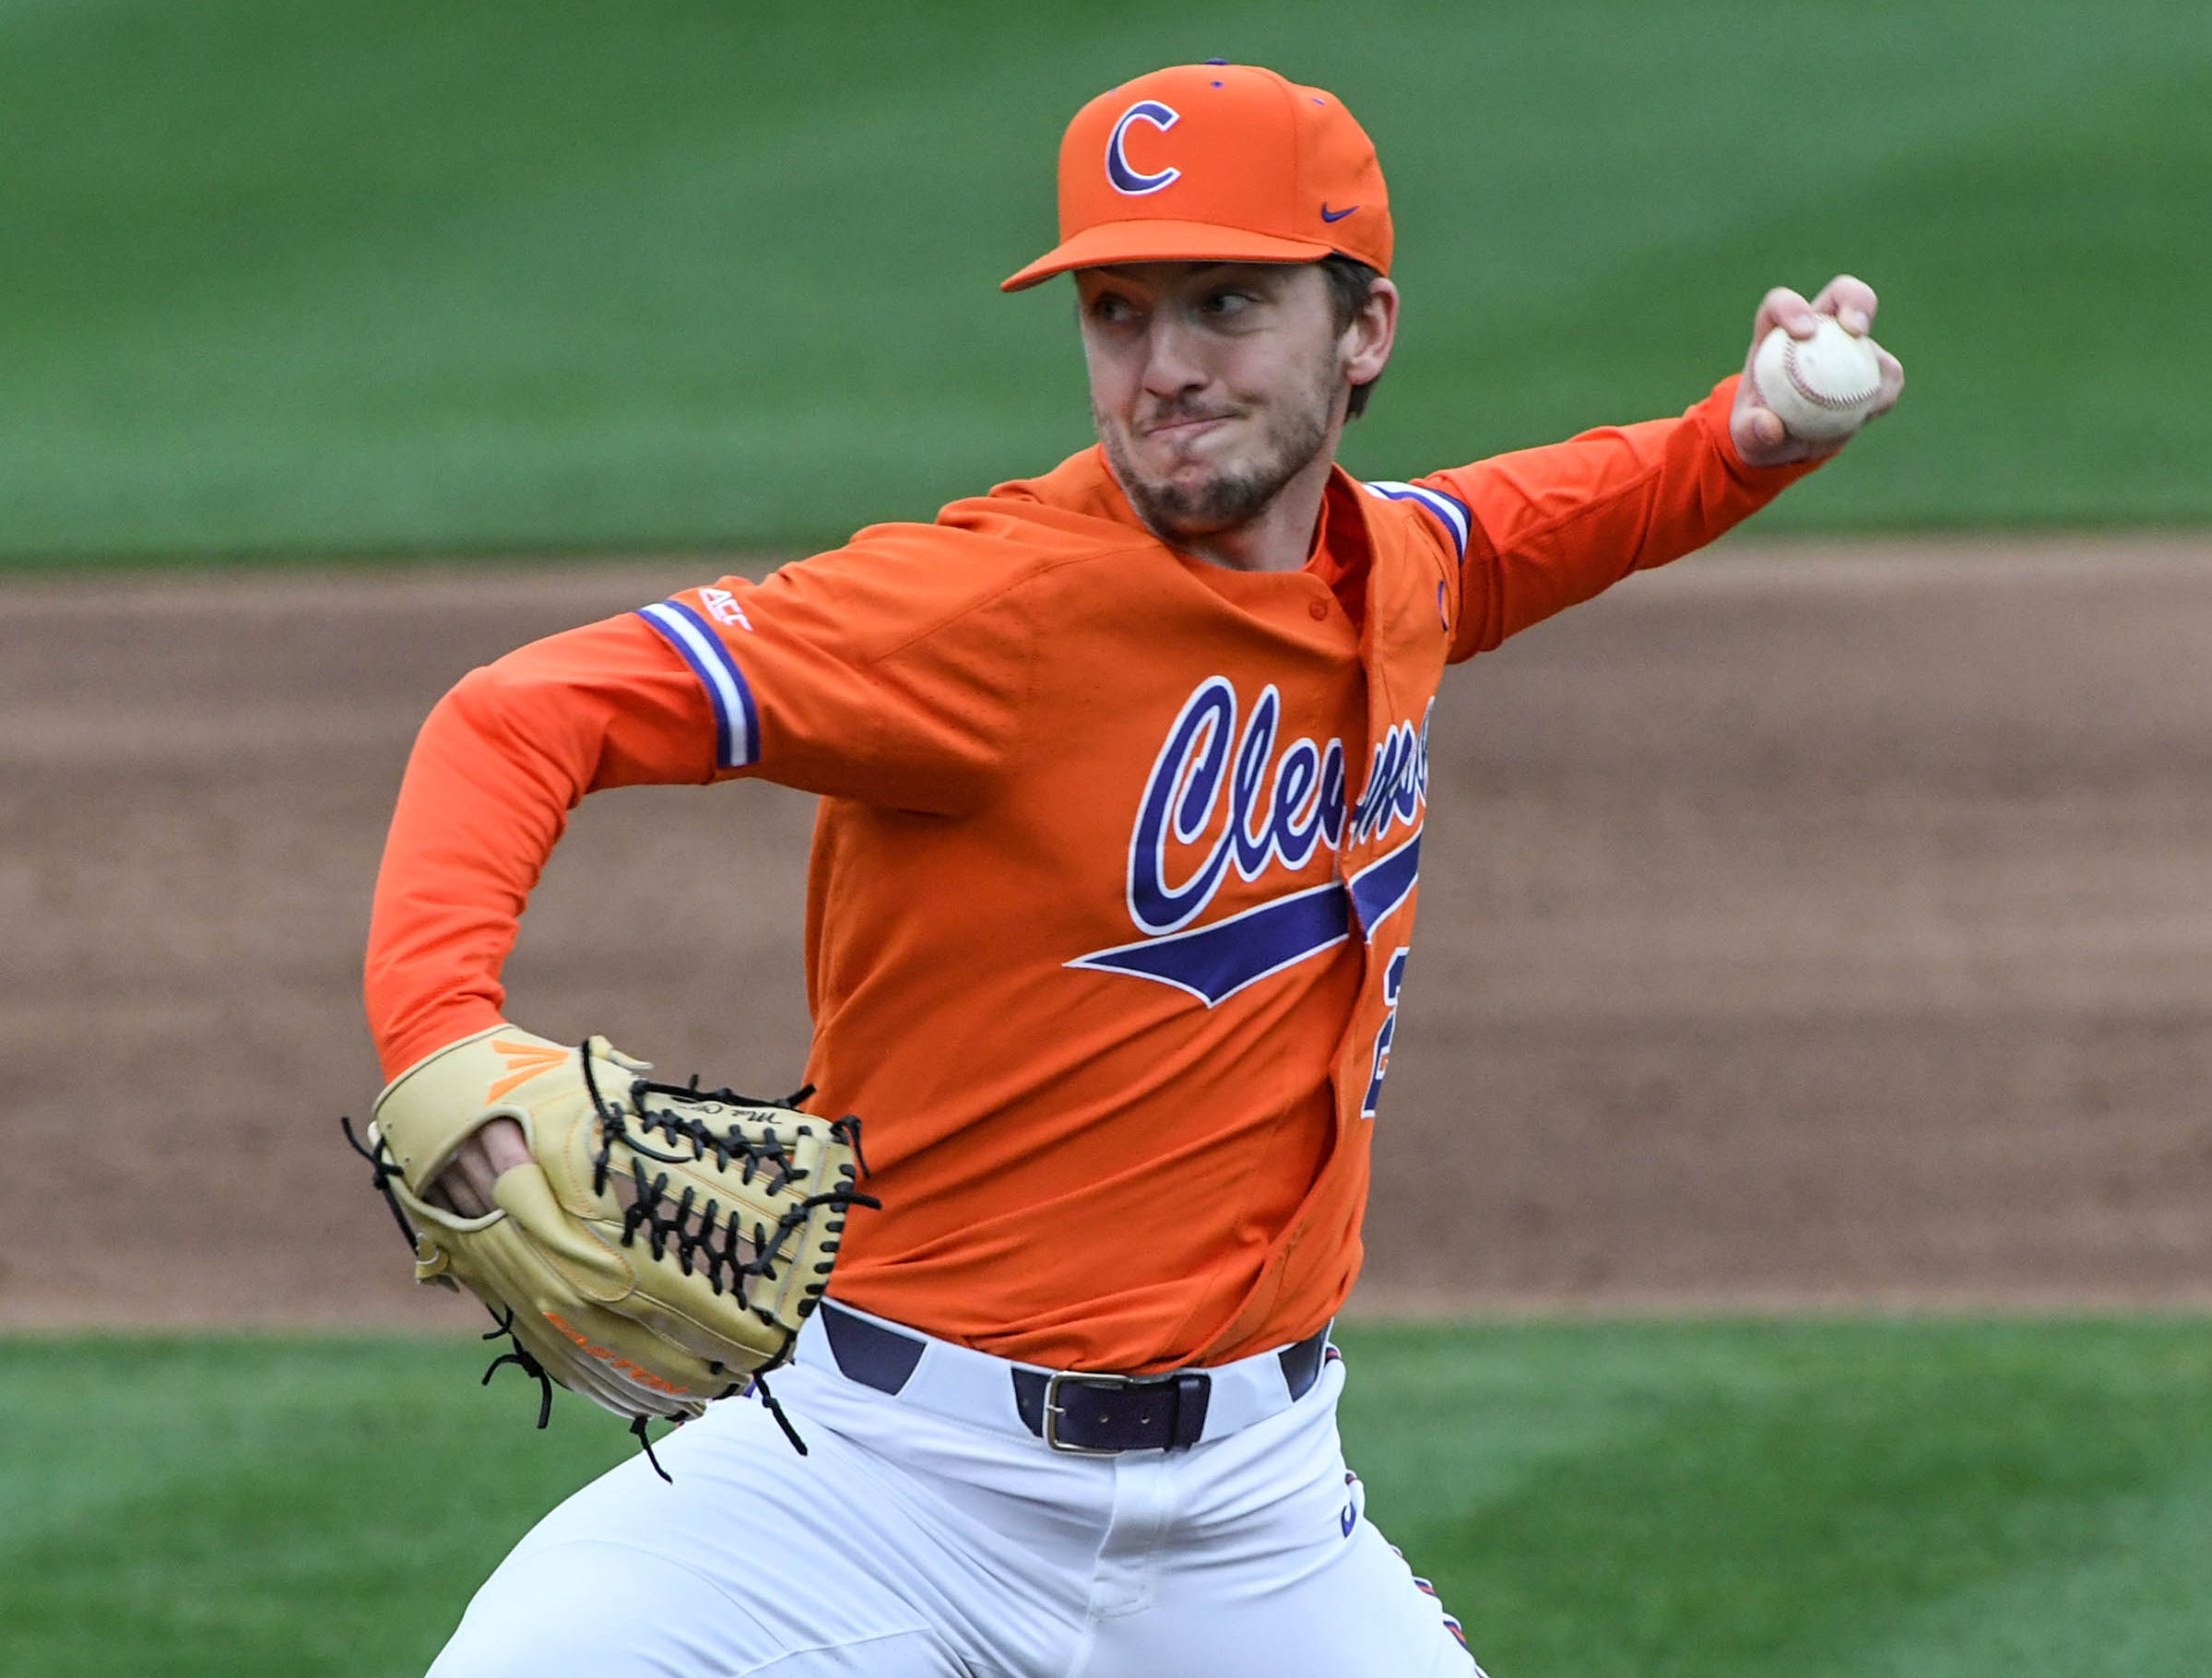 Clemson sophomore Mat Clark(20) pitches to South Alabama during the top of the sixth inning at Doug Kingsmore Stadium in Clemson Friday, February 15, 2019.